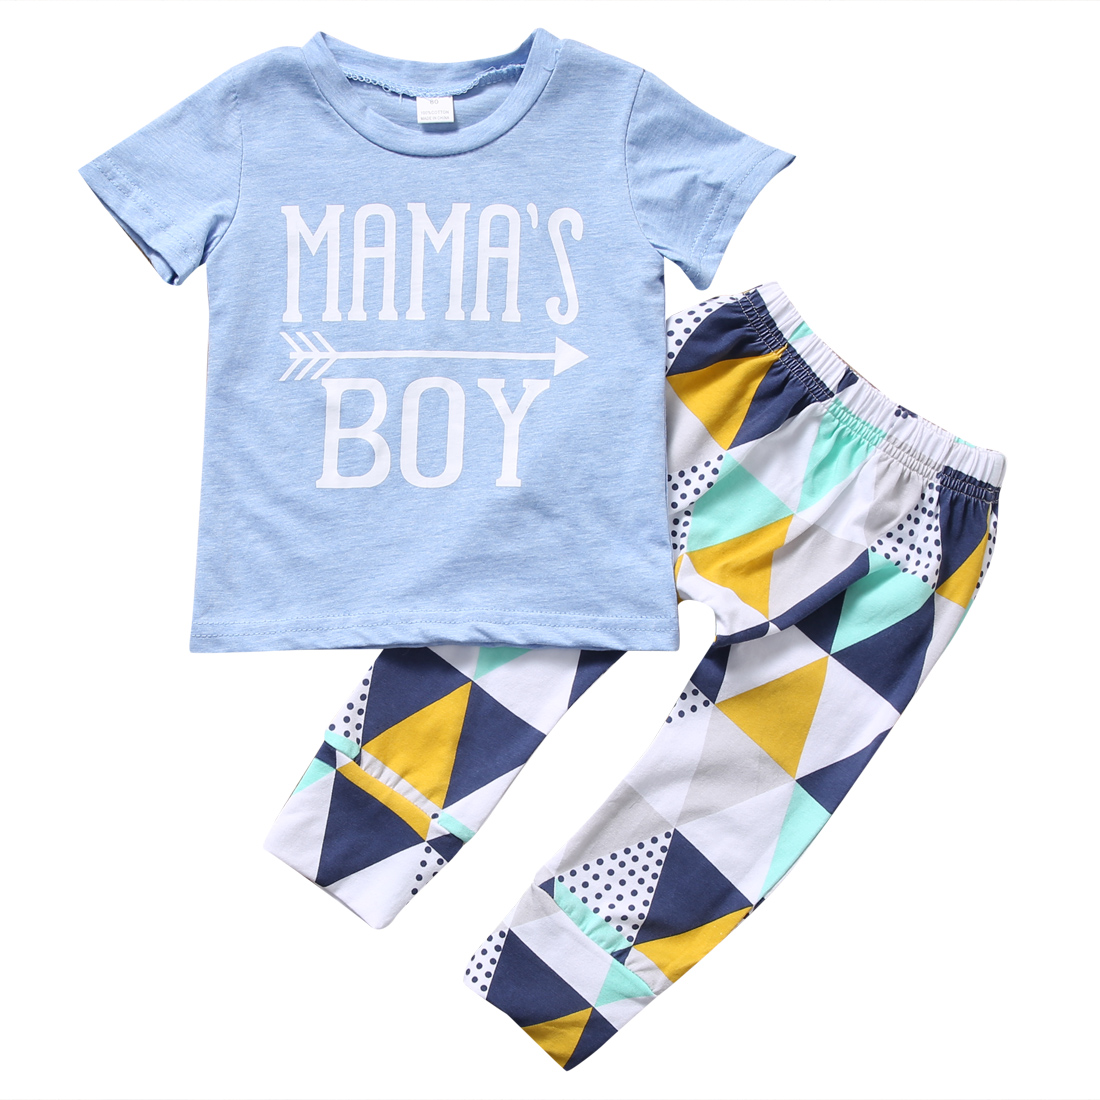 2PCS Newborn Baby Boys Outfits T-shirt Tops+ Pants Sets Clothes Summer Short Sleeve Mama Boy Print Tees Casual Clothes 2017 newborn baby boy clothes summer short sleeve mama s boy cotton t shirt tops pant 2pcs outfit toddler kids clothing set